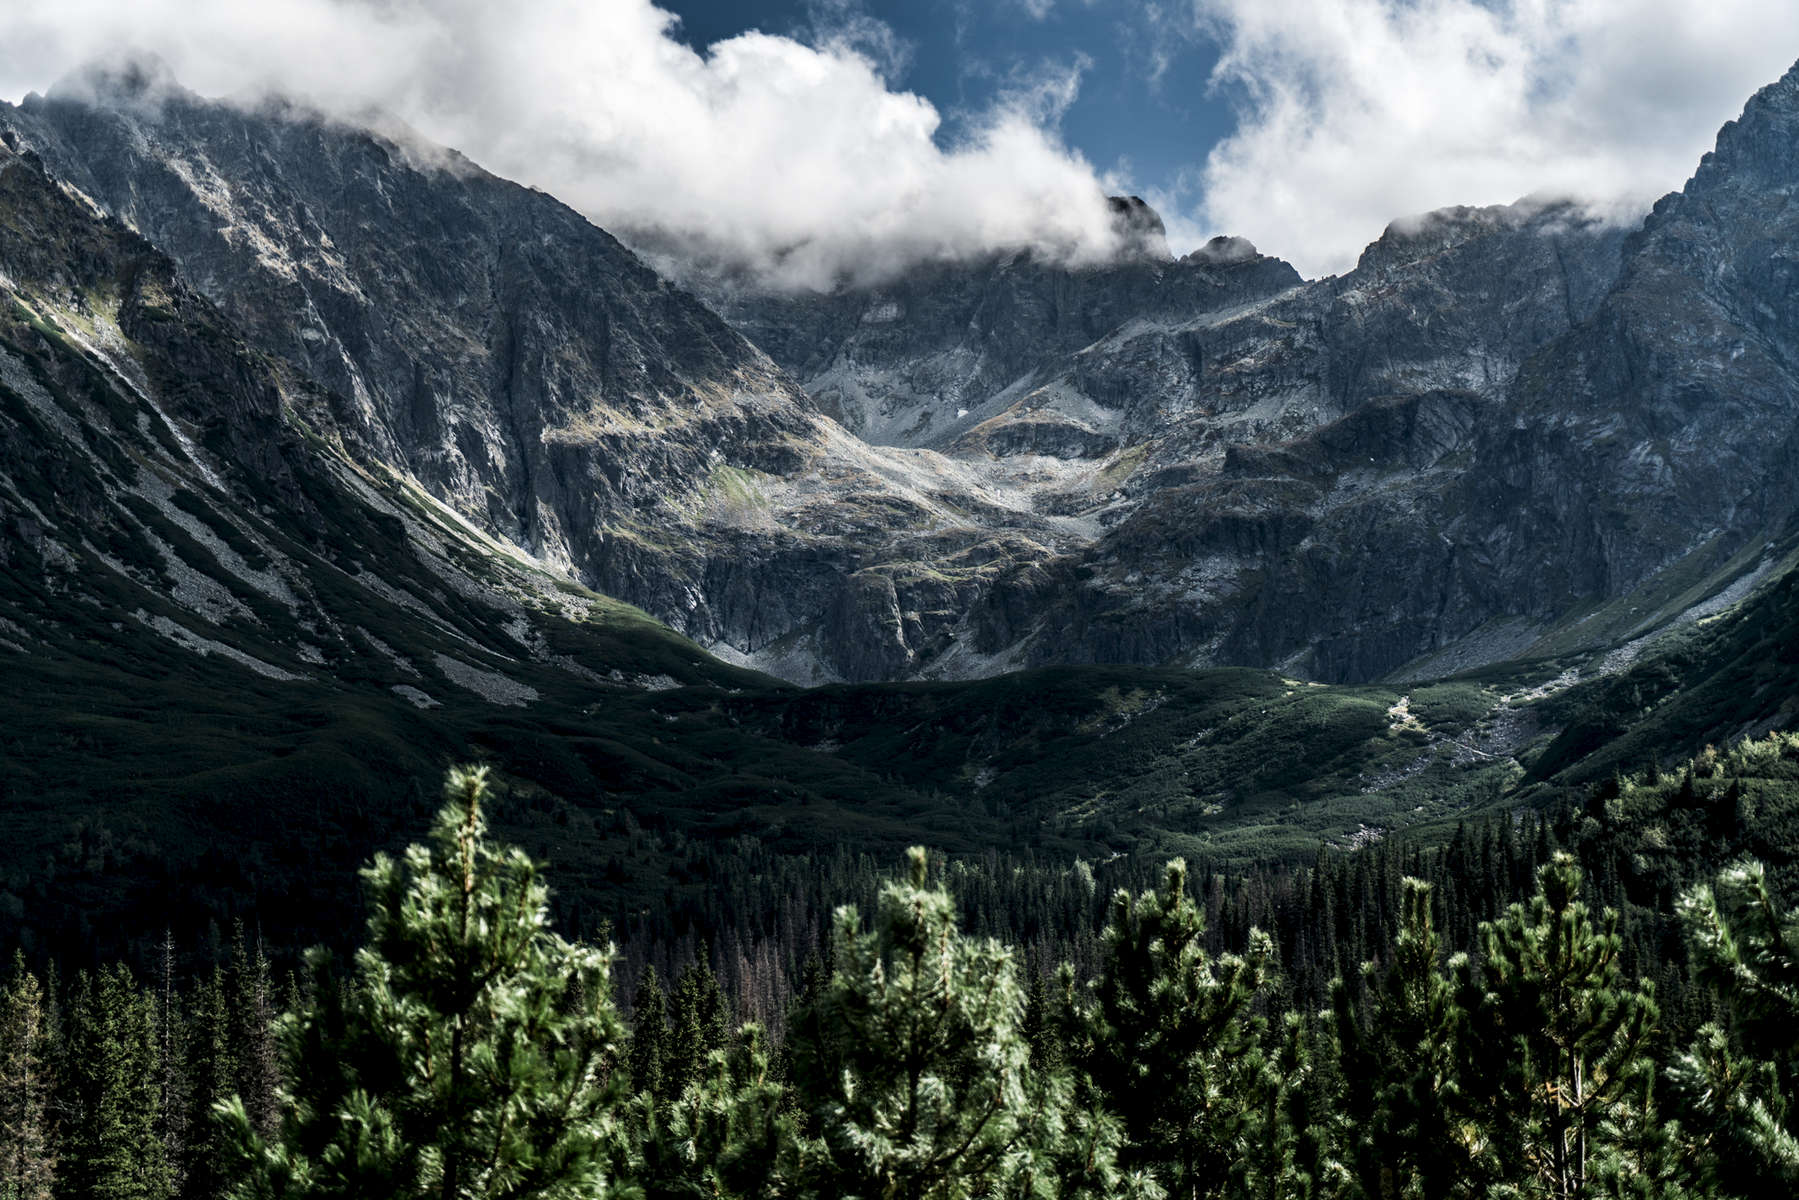 A part of the High Tatras mountains in Poland